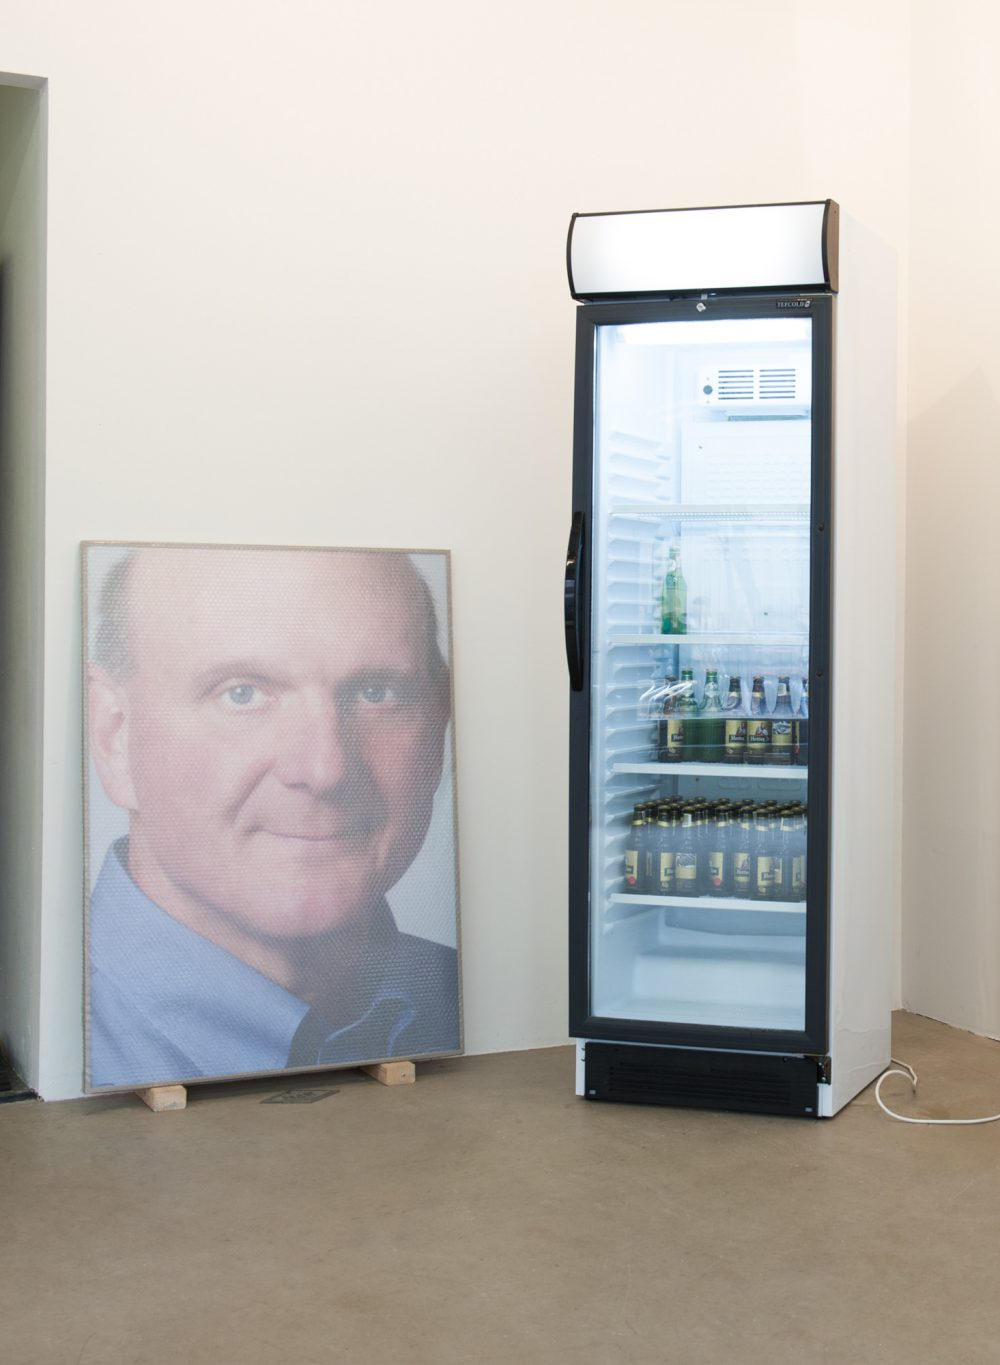 Jonas Lund Steve Ballmer, A Fridge and Six Crates Of Beer